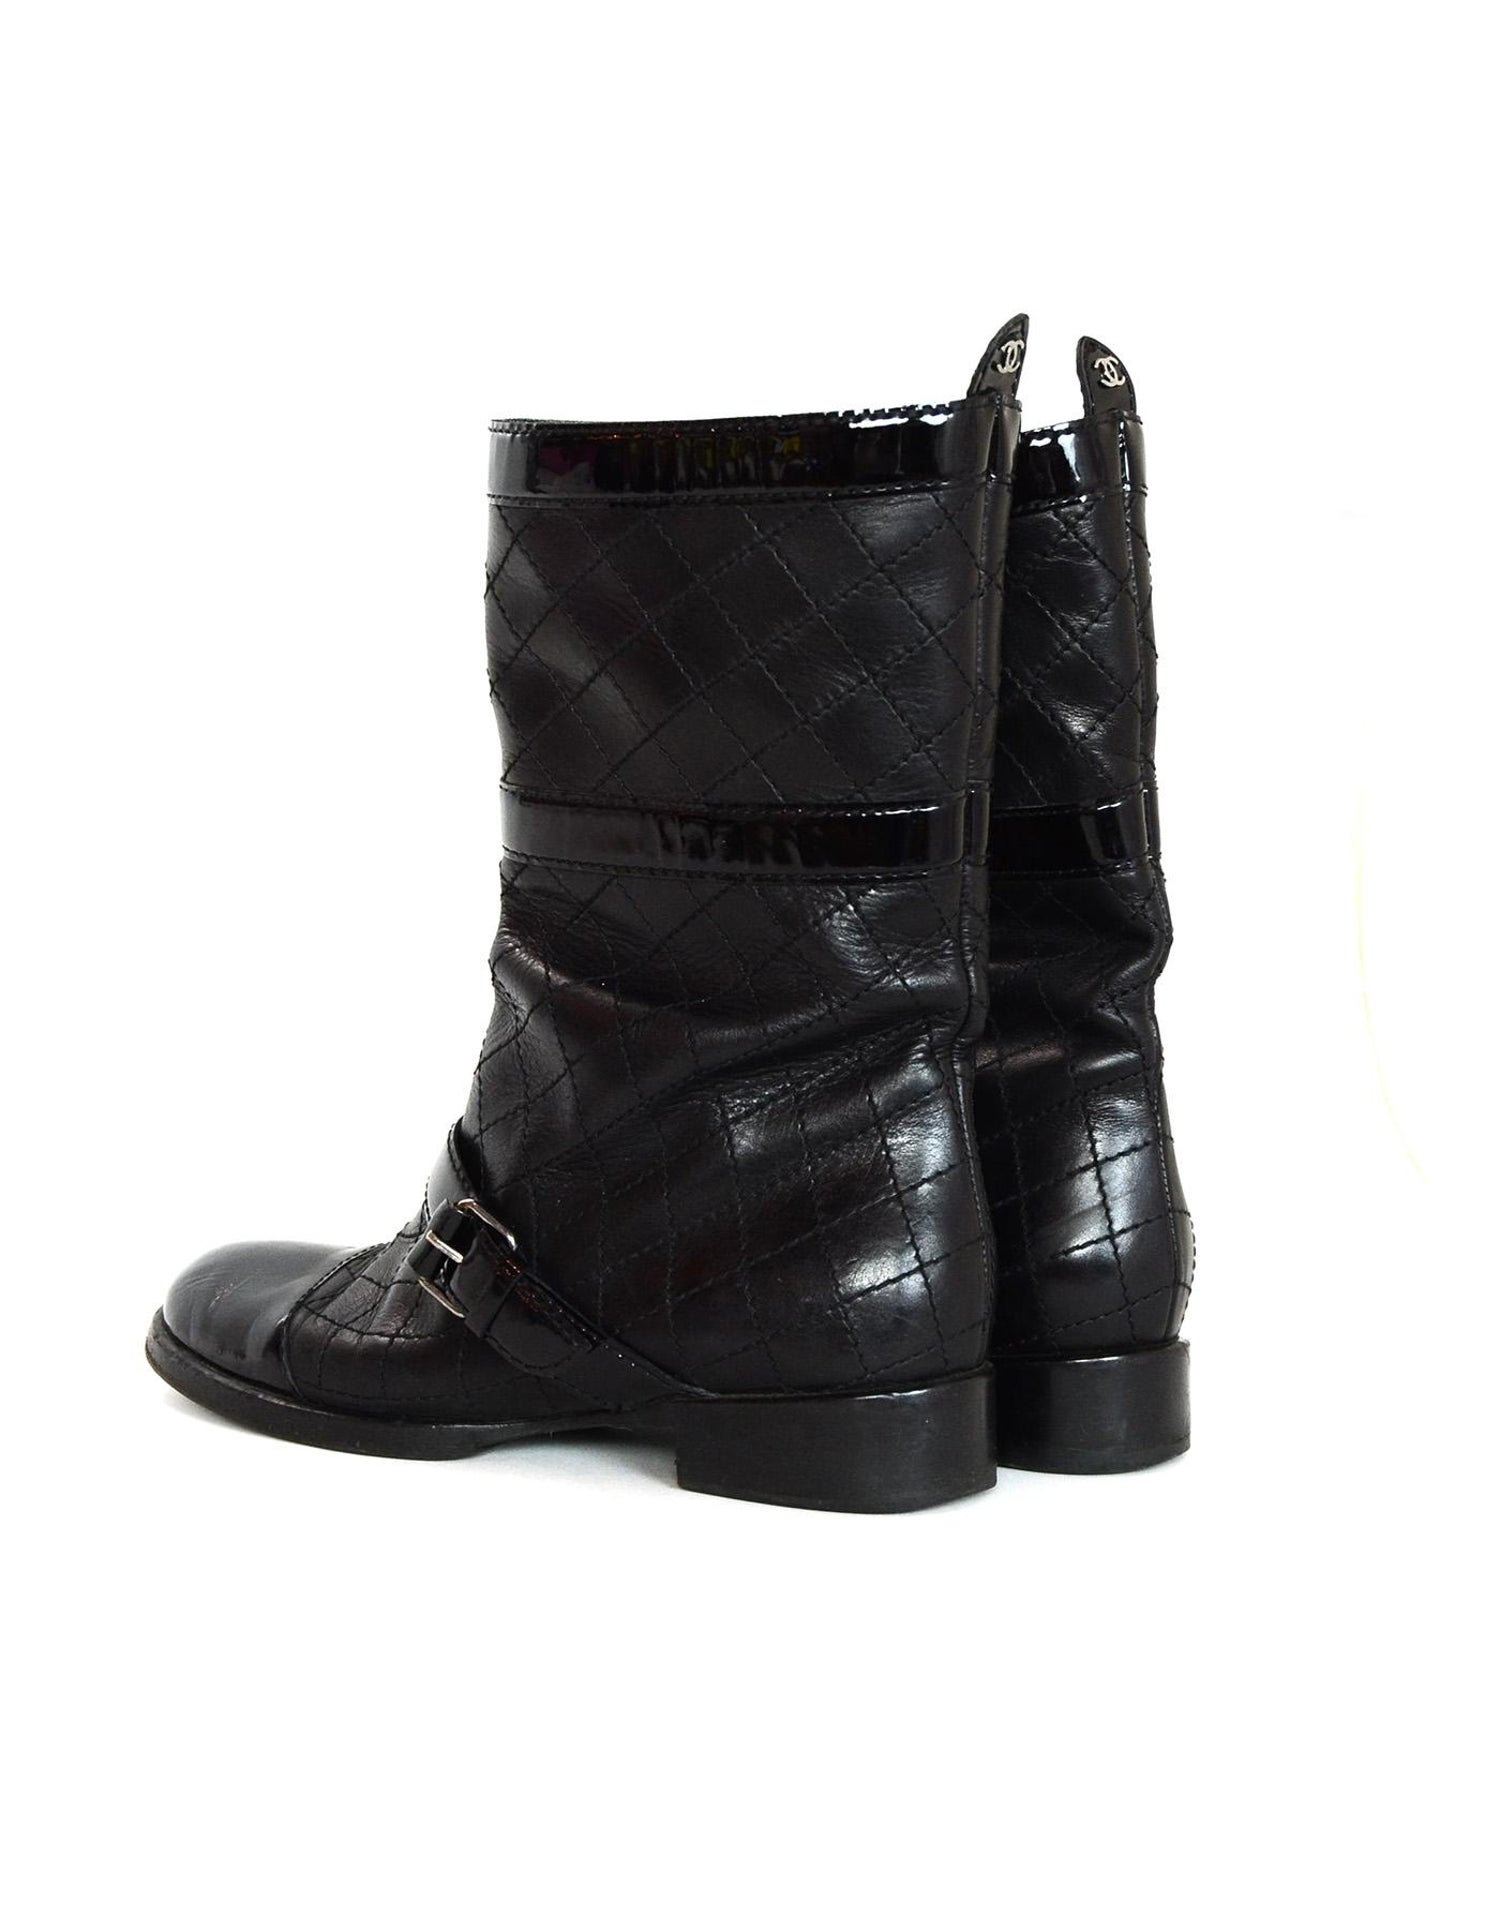 47d13e894608 Chanel Black Quilted Leather Buckle Boots W  Patent Toe Sz 38 For Sale at  1stdibs